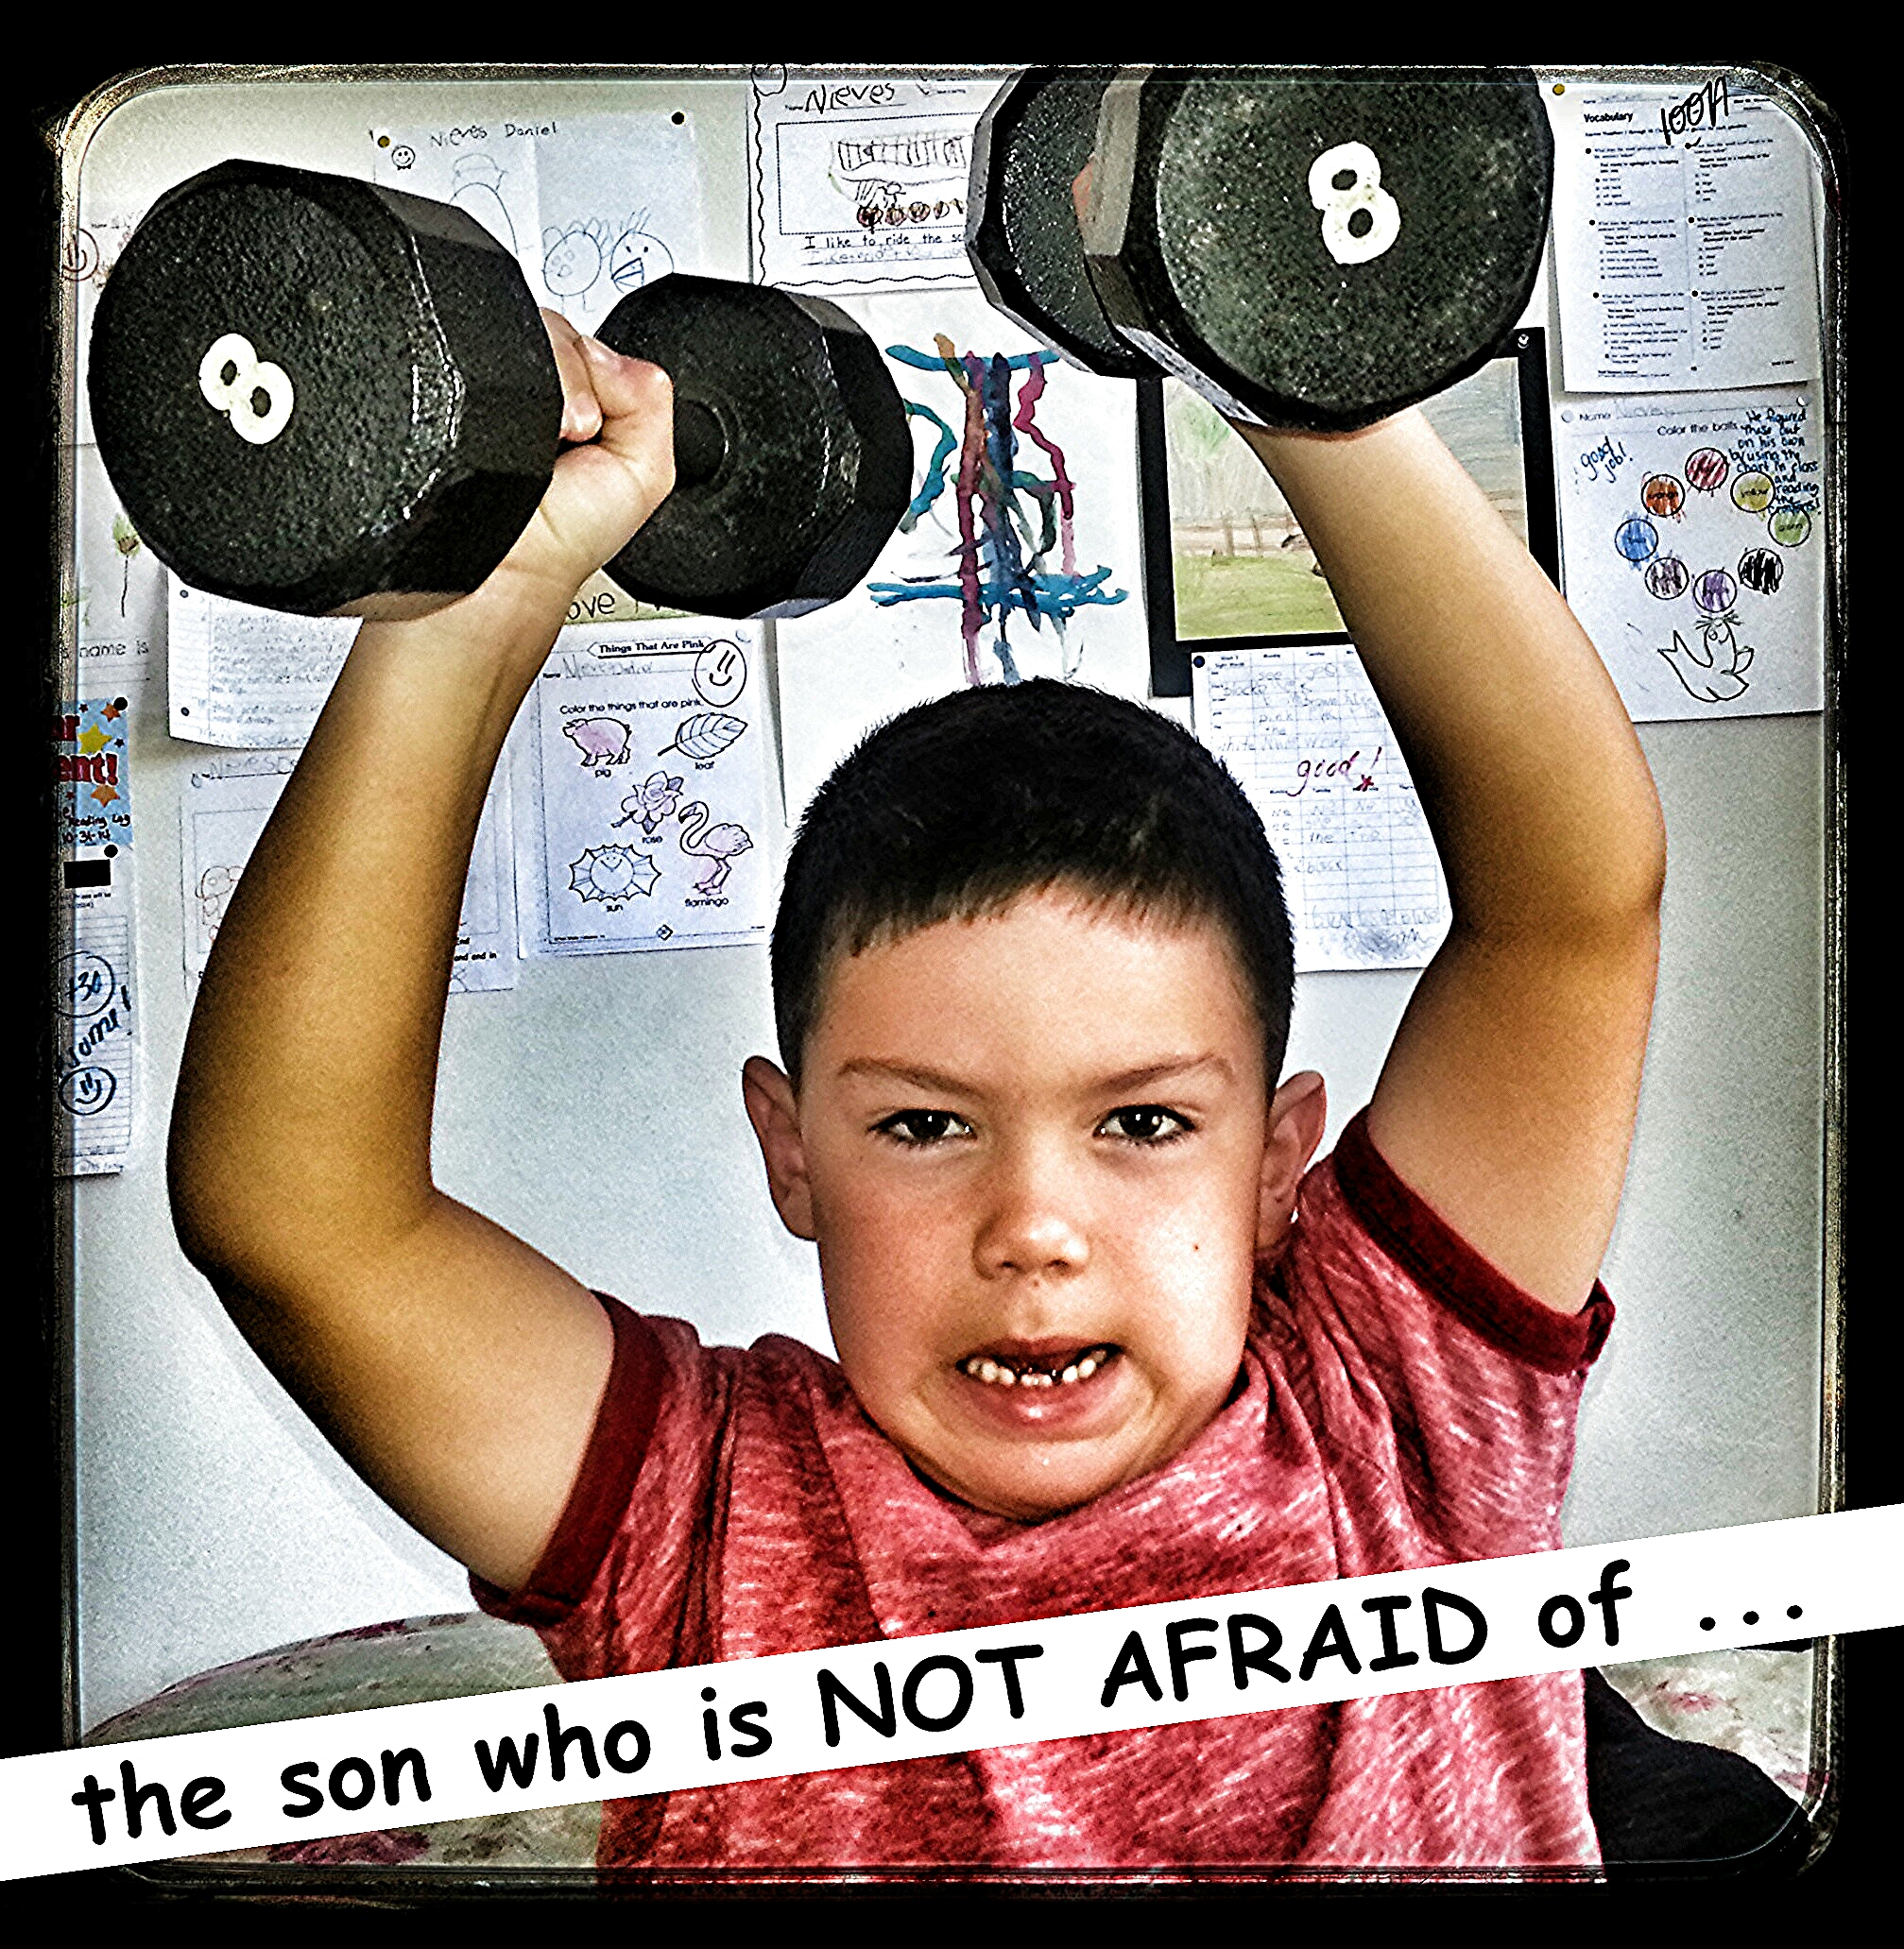 Things your son needs - A son WHO IS NOT AFRAID of new challenges will become a MAN who is NOT AFRAID of new challenges.